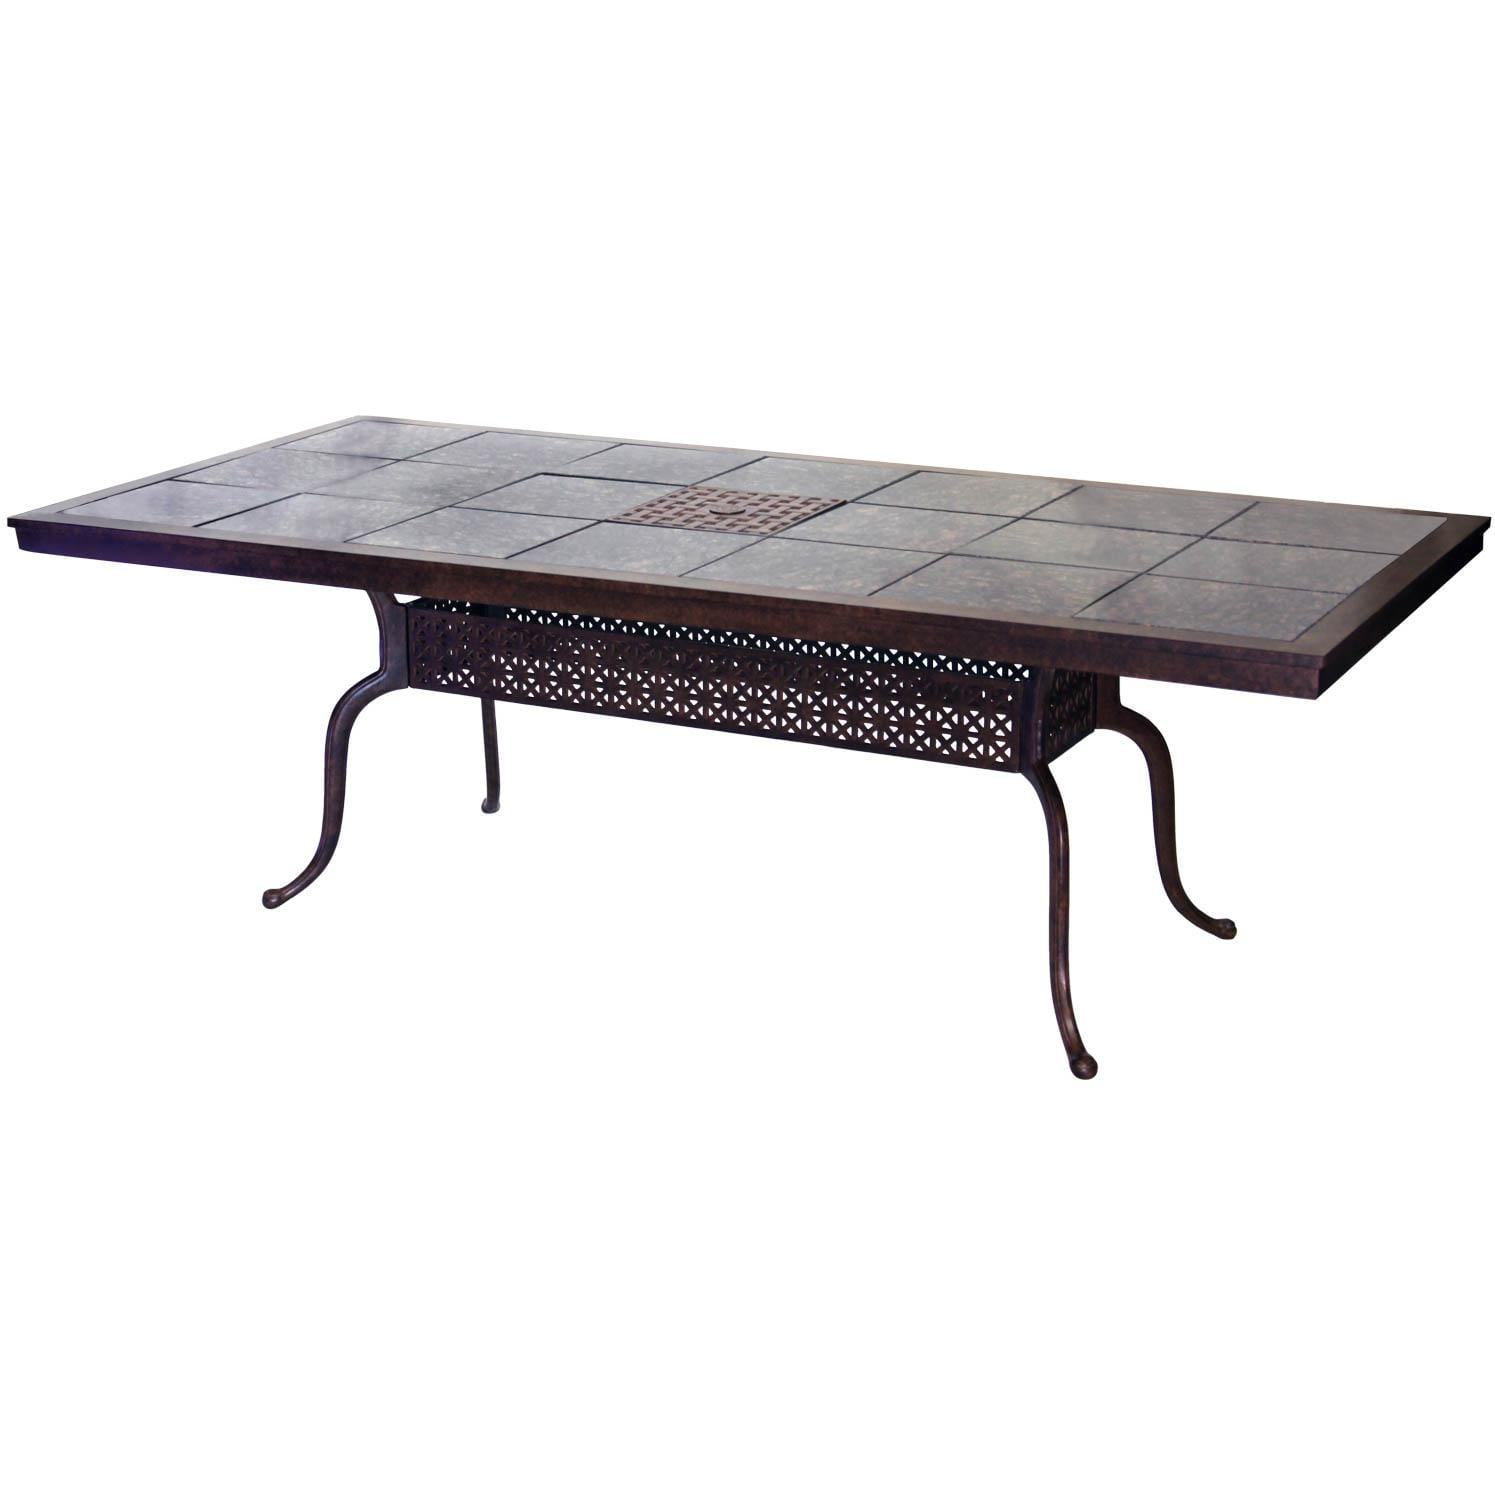 Darlee Series 77 Aluminum Patio Dining Table